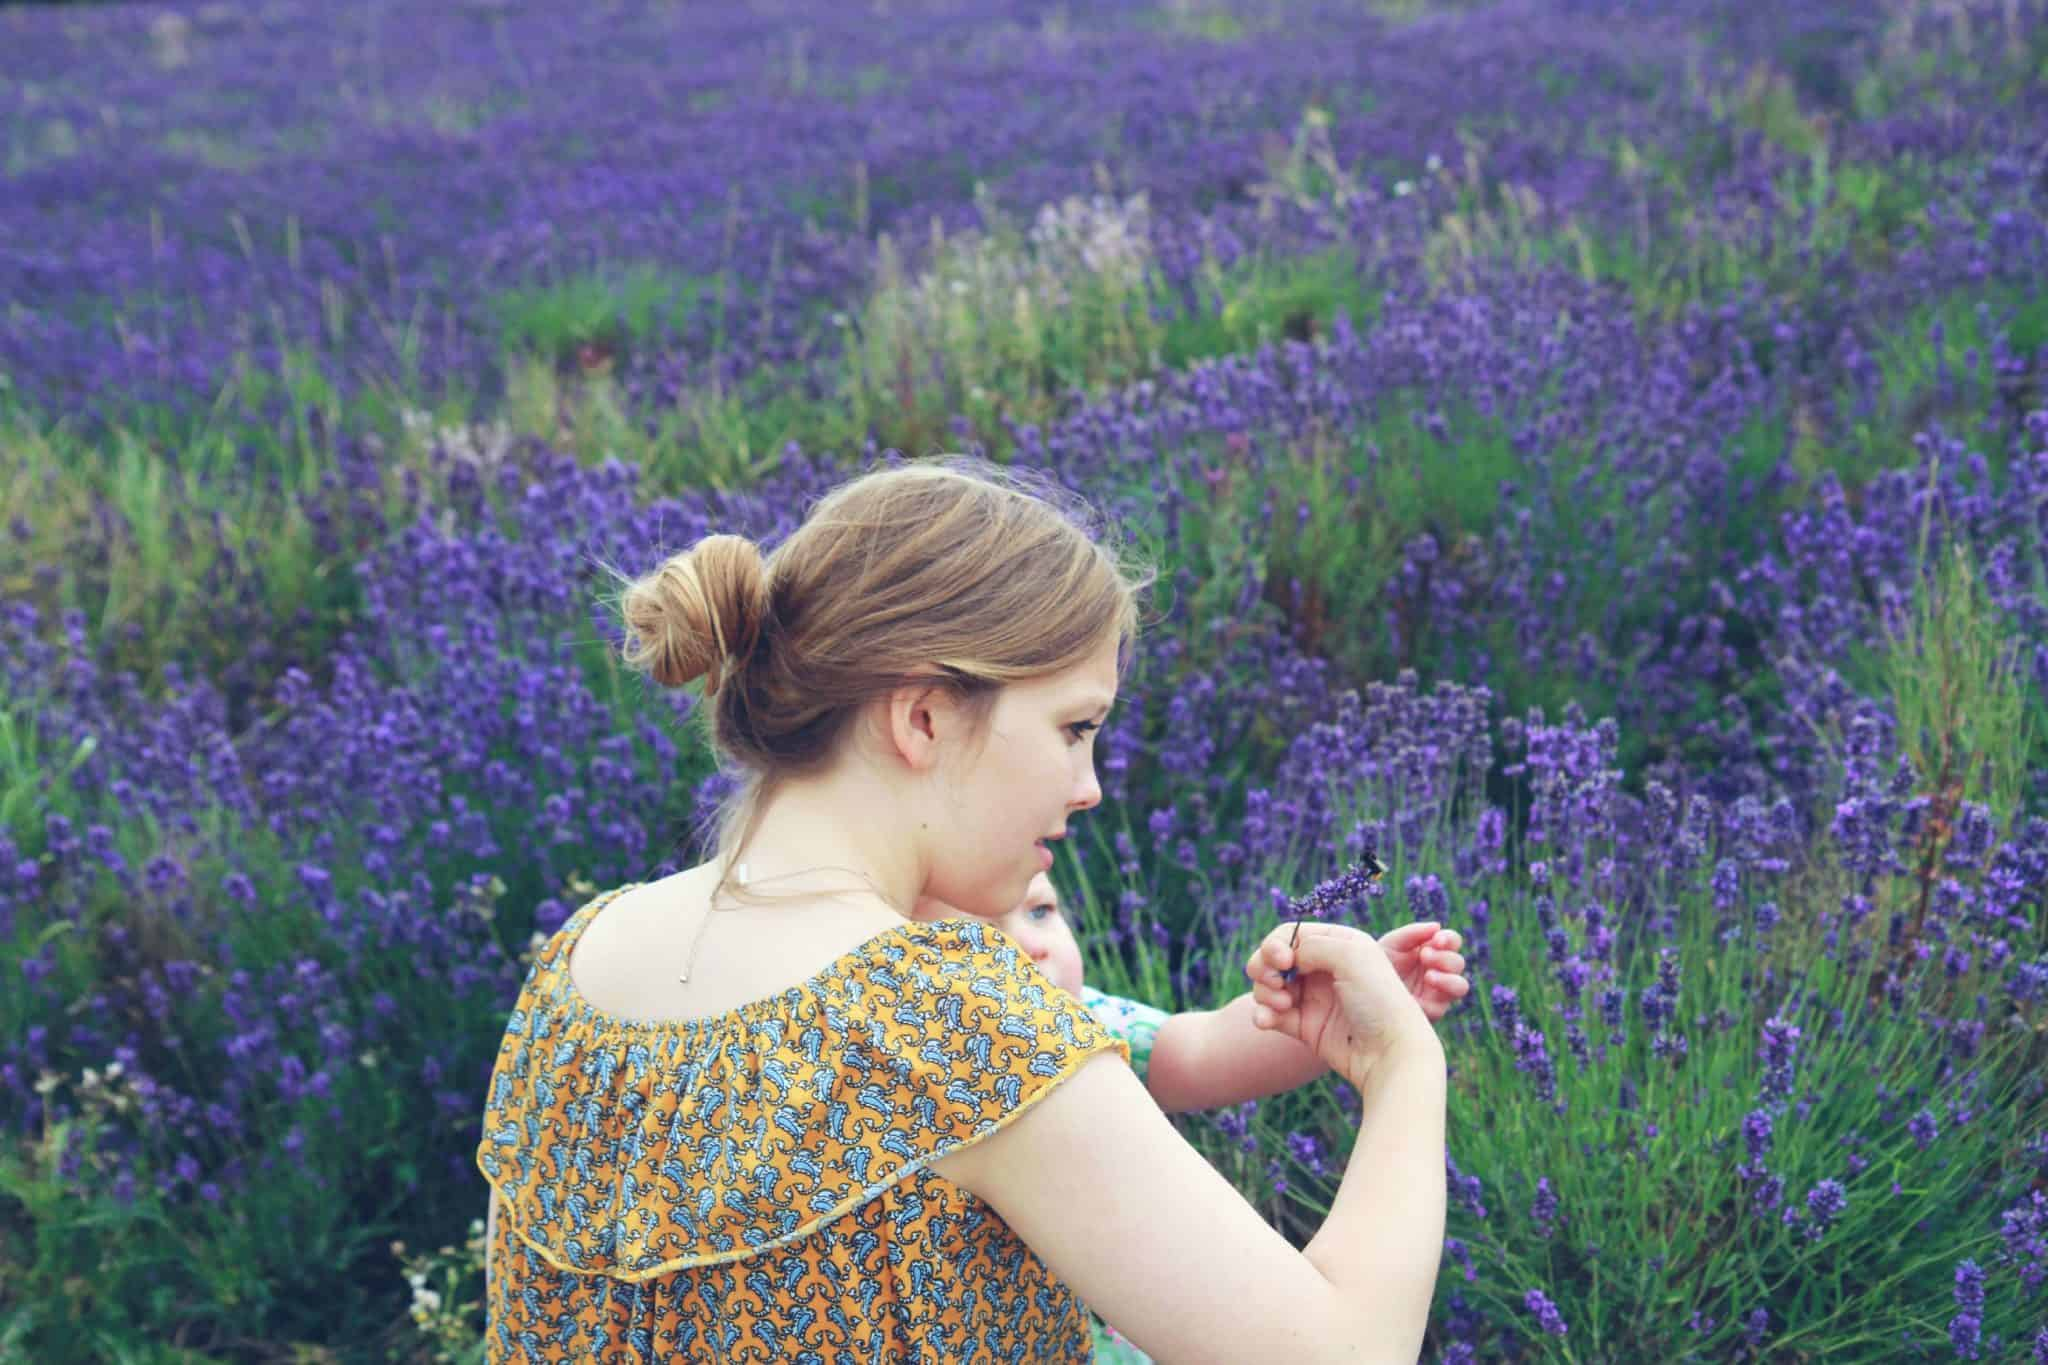 two sisters looking at a bee in a field of lavender